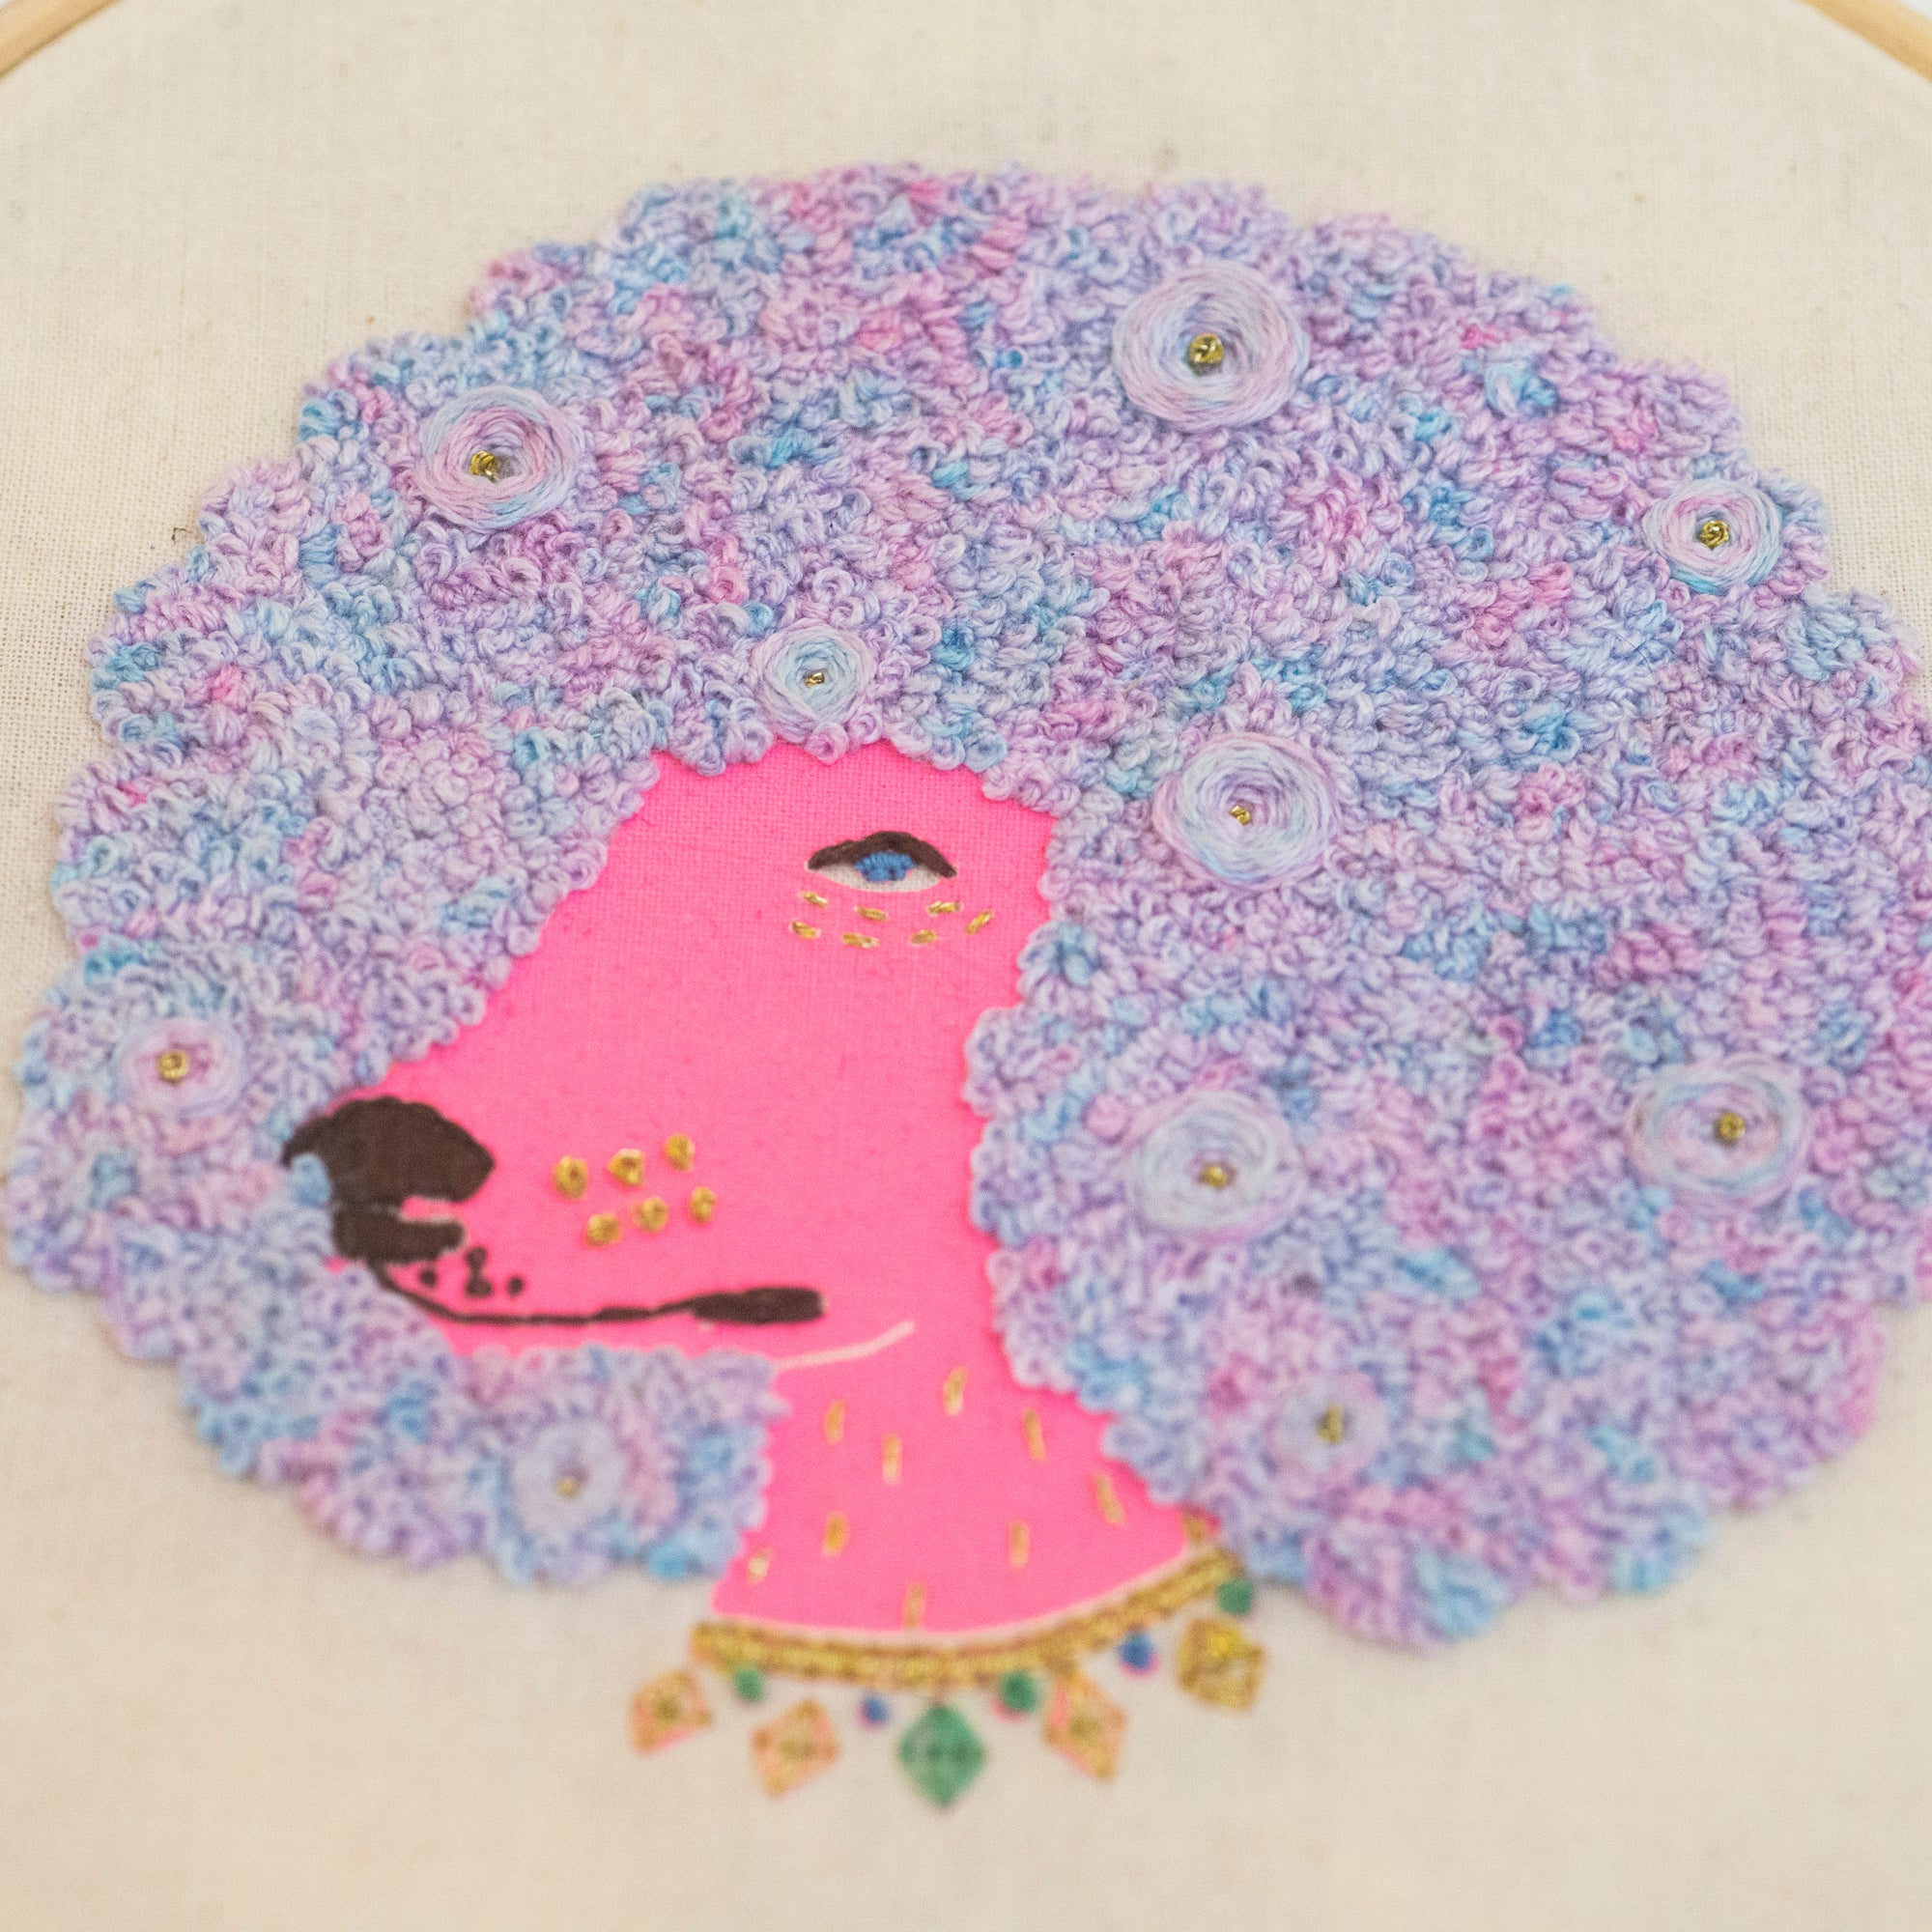 Embroidery Kit - Fashion Poodle